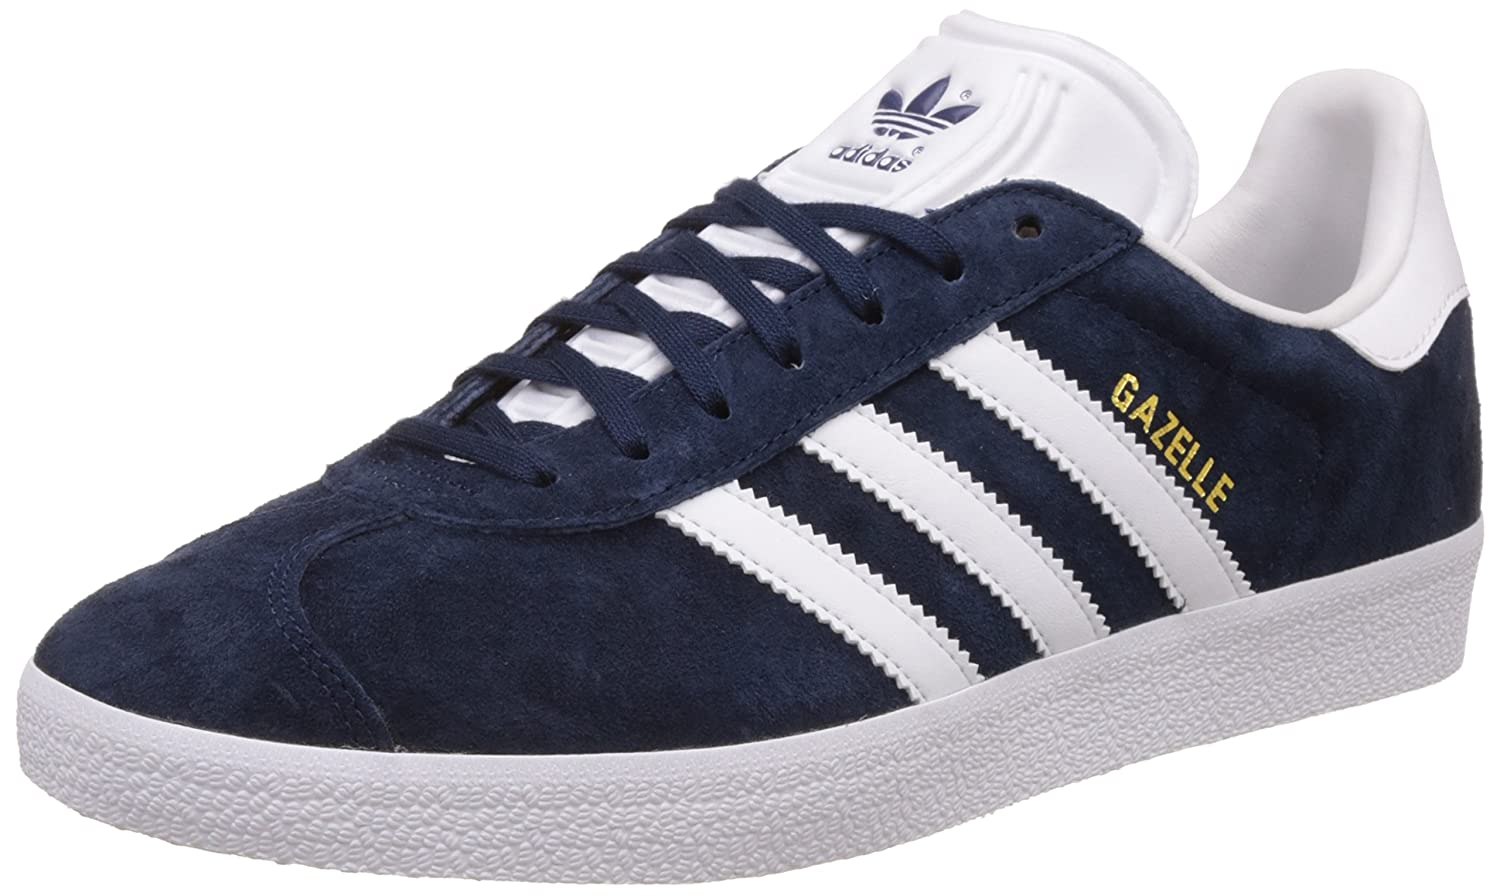 adidas Gazelle, Gazelle, Baskets B0742QCJR7 Basses Mixte Adulte Bleu (Collegiate Adulte Navy/White/Gold Metallic 0) f7b1073 - avtodorozhniks.space